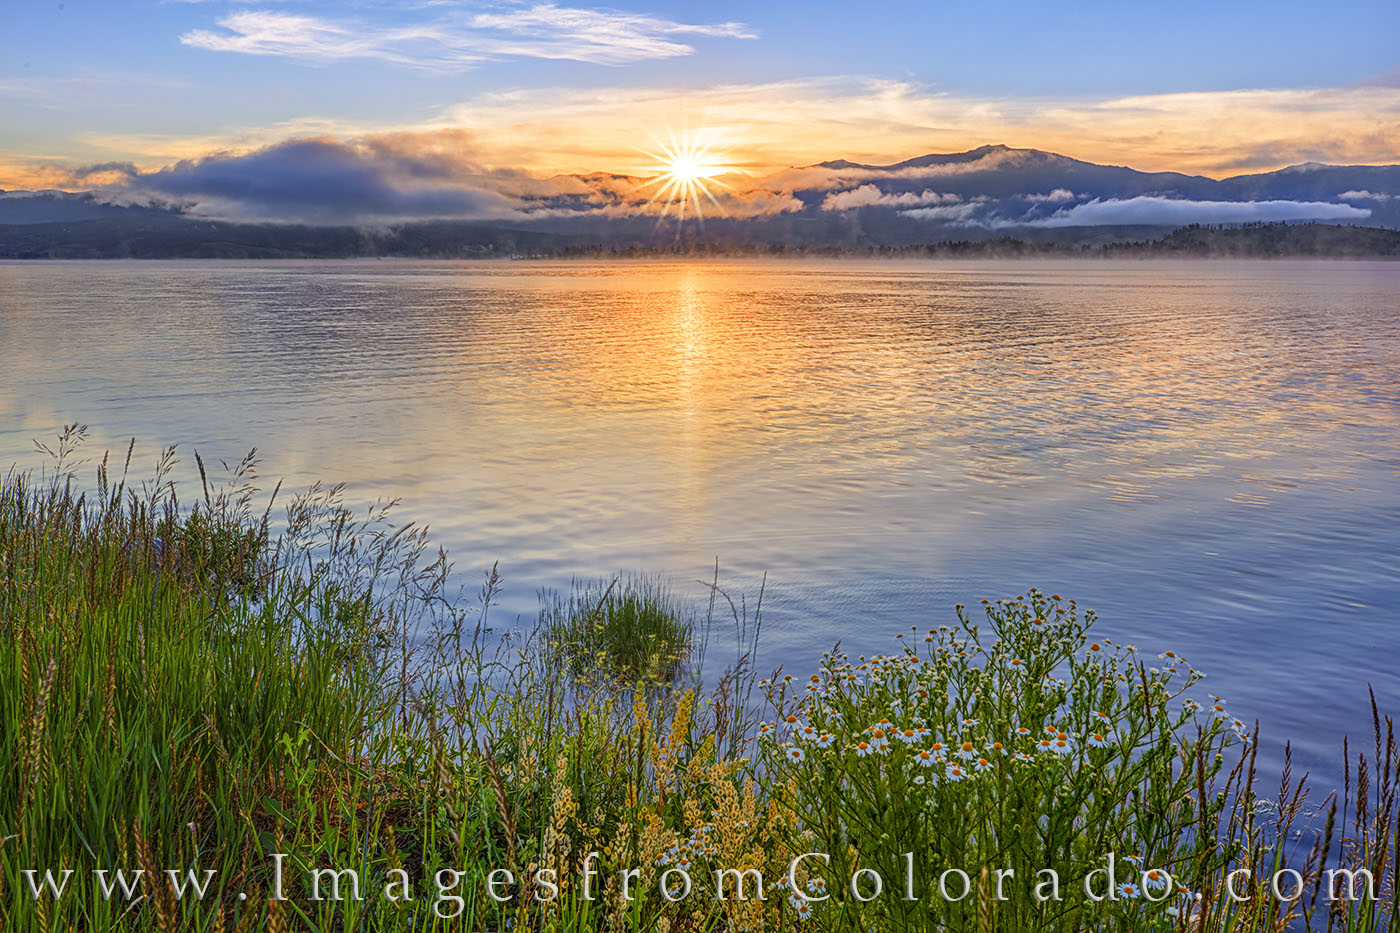 grand lake, lake granby, sunrise, wildflowers, grand county, highway 34, rocky mountains, lake, water, morning, photo